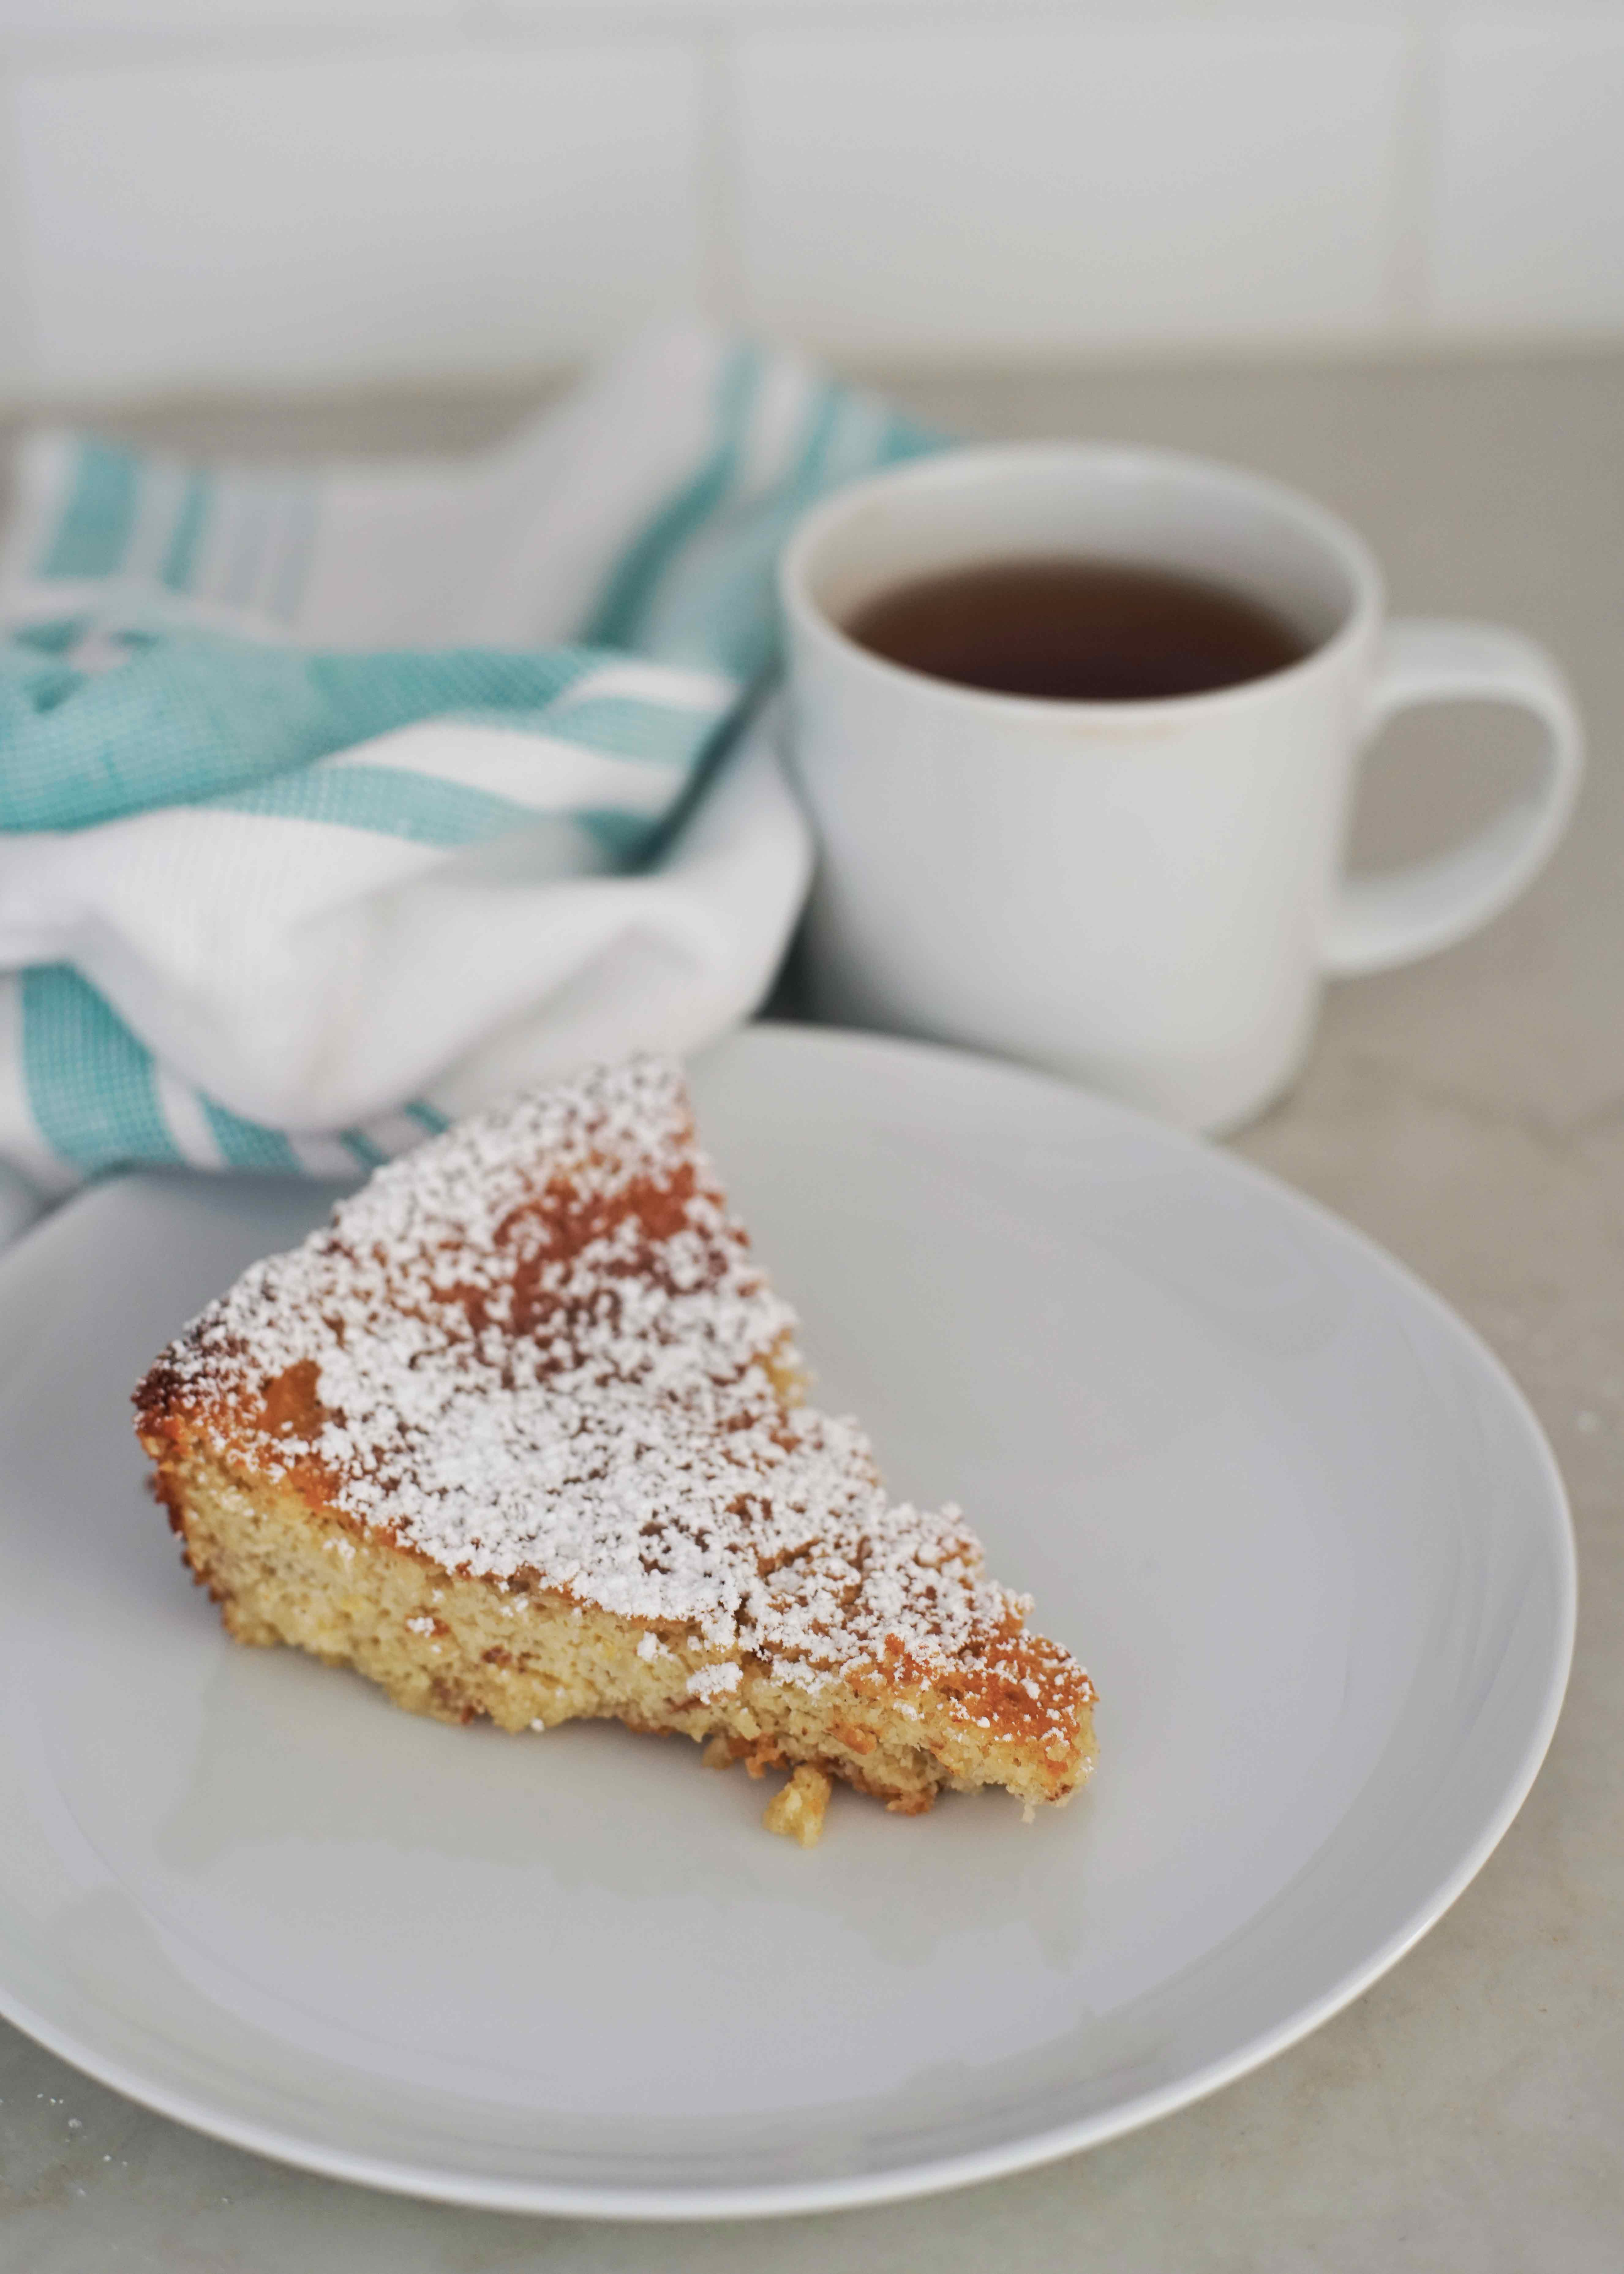 Almond tea cake for tea time paired with black tea